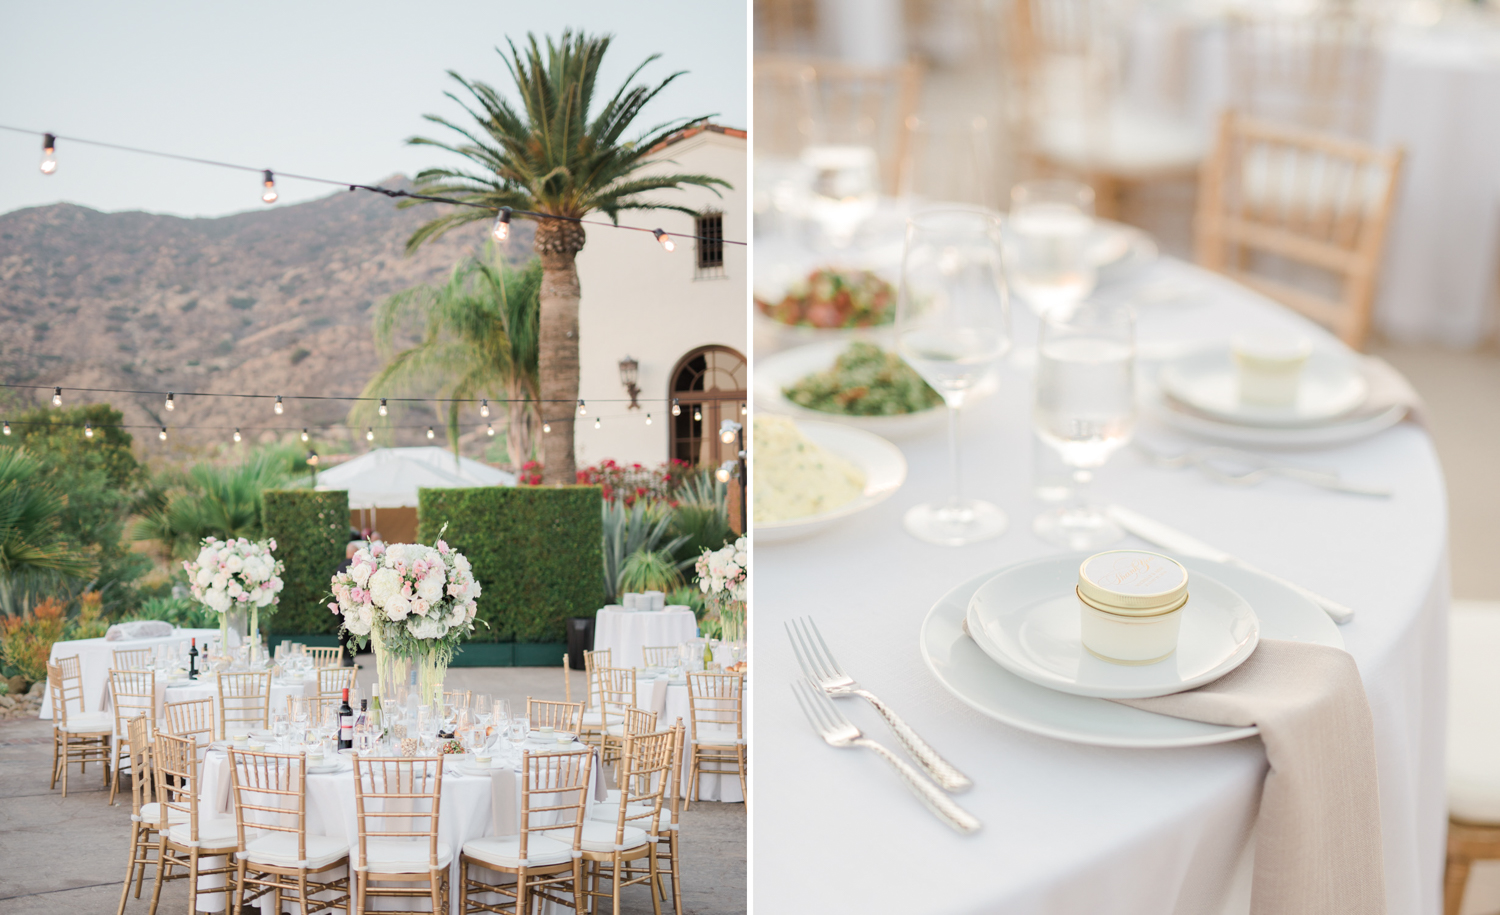 azer&michelle_hummingbird_nest_ranch_wedding_fine_art_photographer_los_angeles-46.jpg